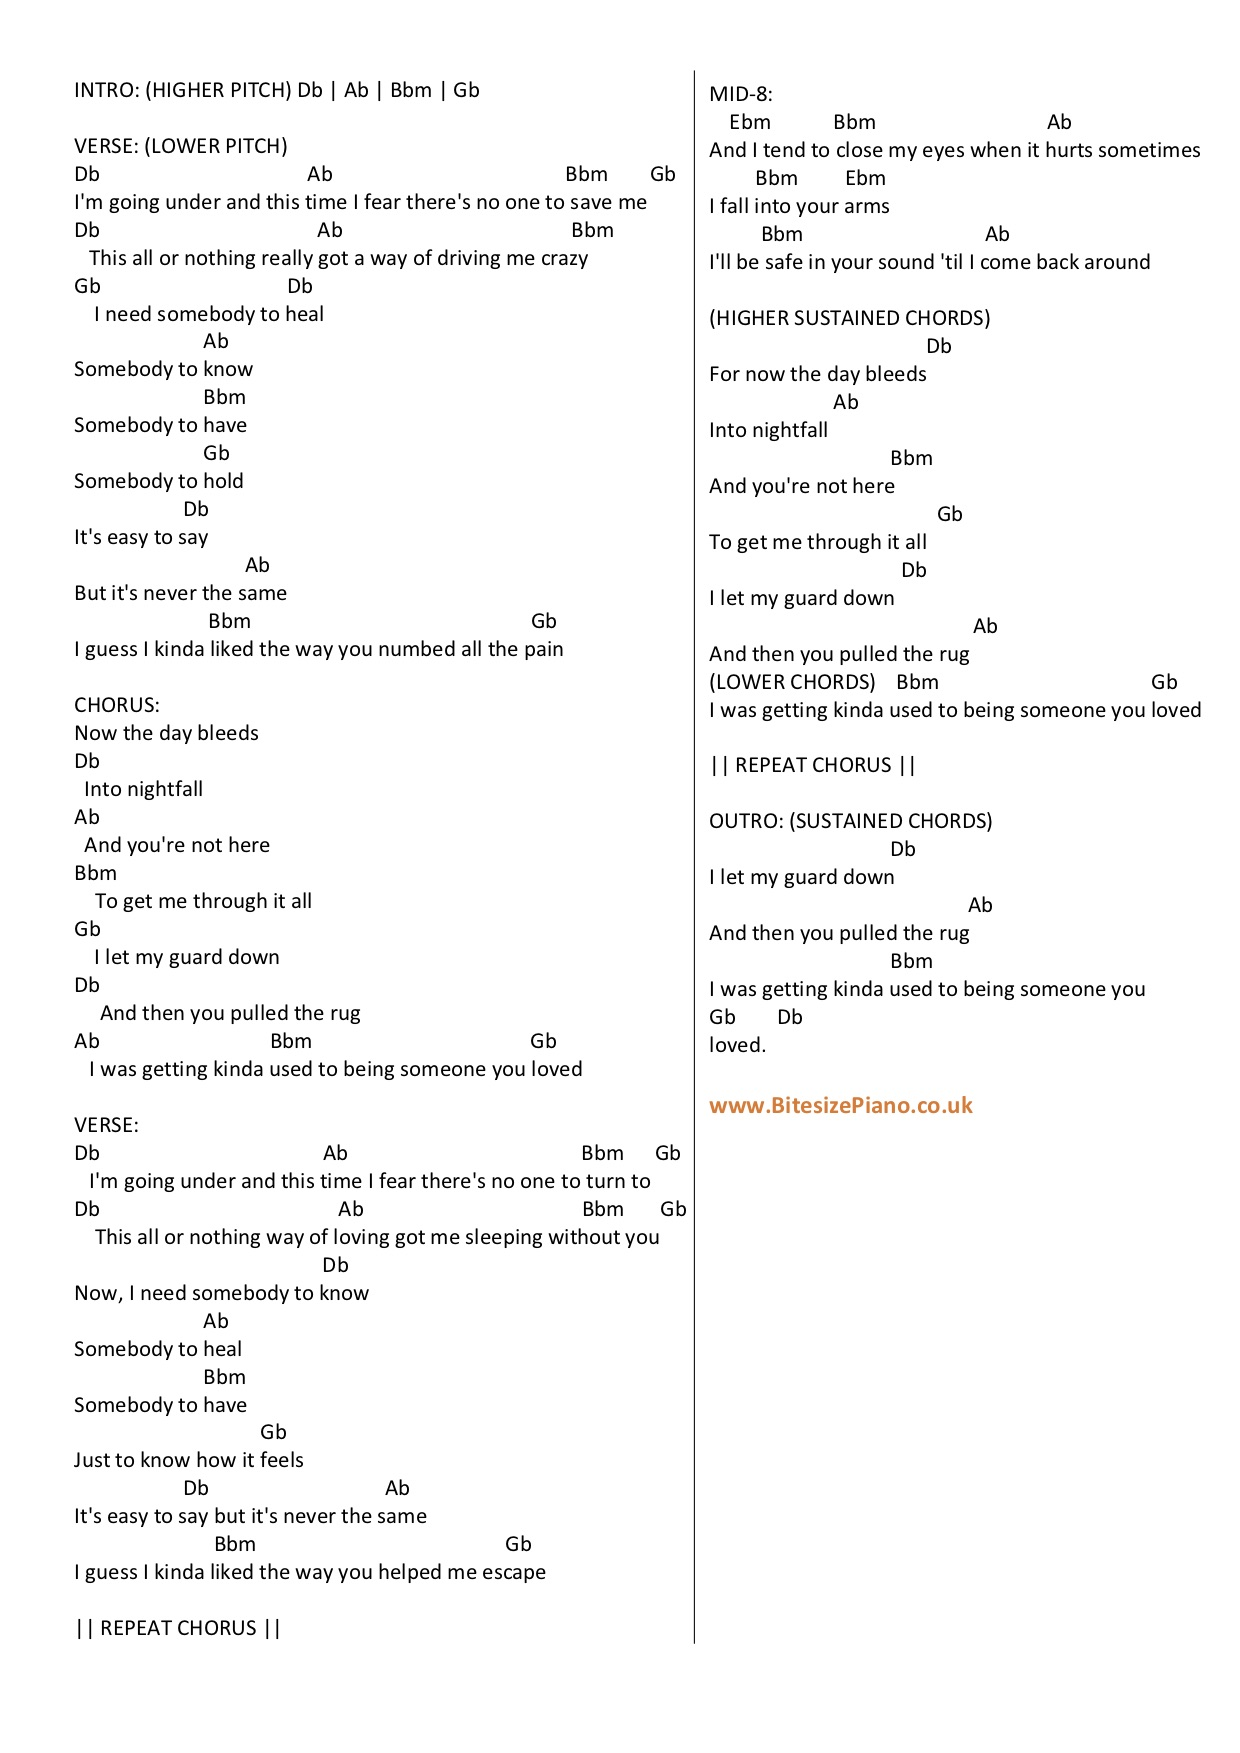 Someone You Loved Lewis Capaldi Piano Chords Lyrics Bitesize Piano